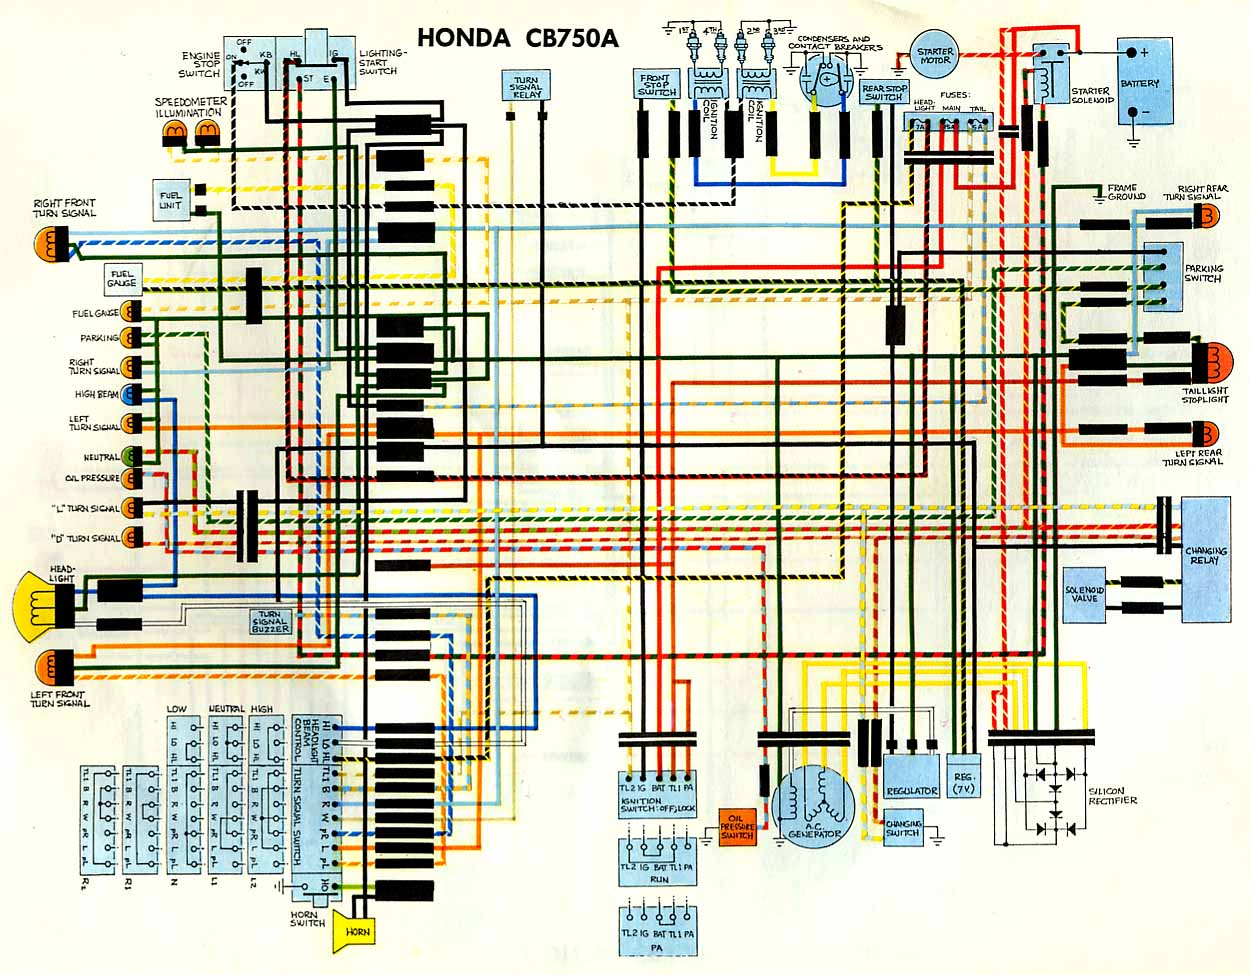 hight resolution of 1984 cb650 simple wiring diagram wiring diagrams scematic electrical wiring 1980 honda cb750 wiring diagram wiring